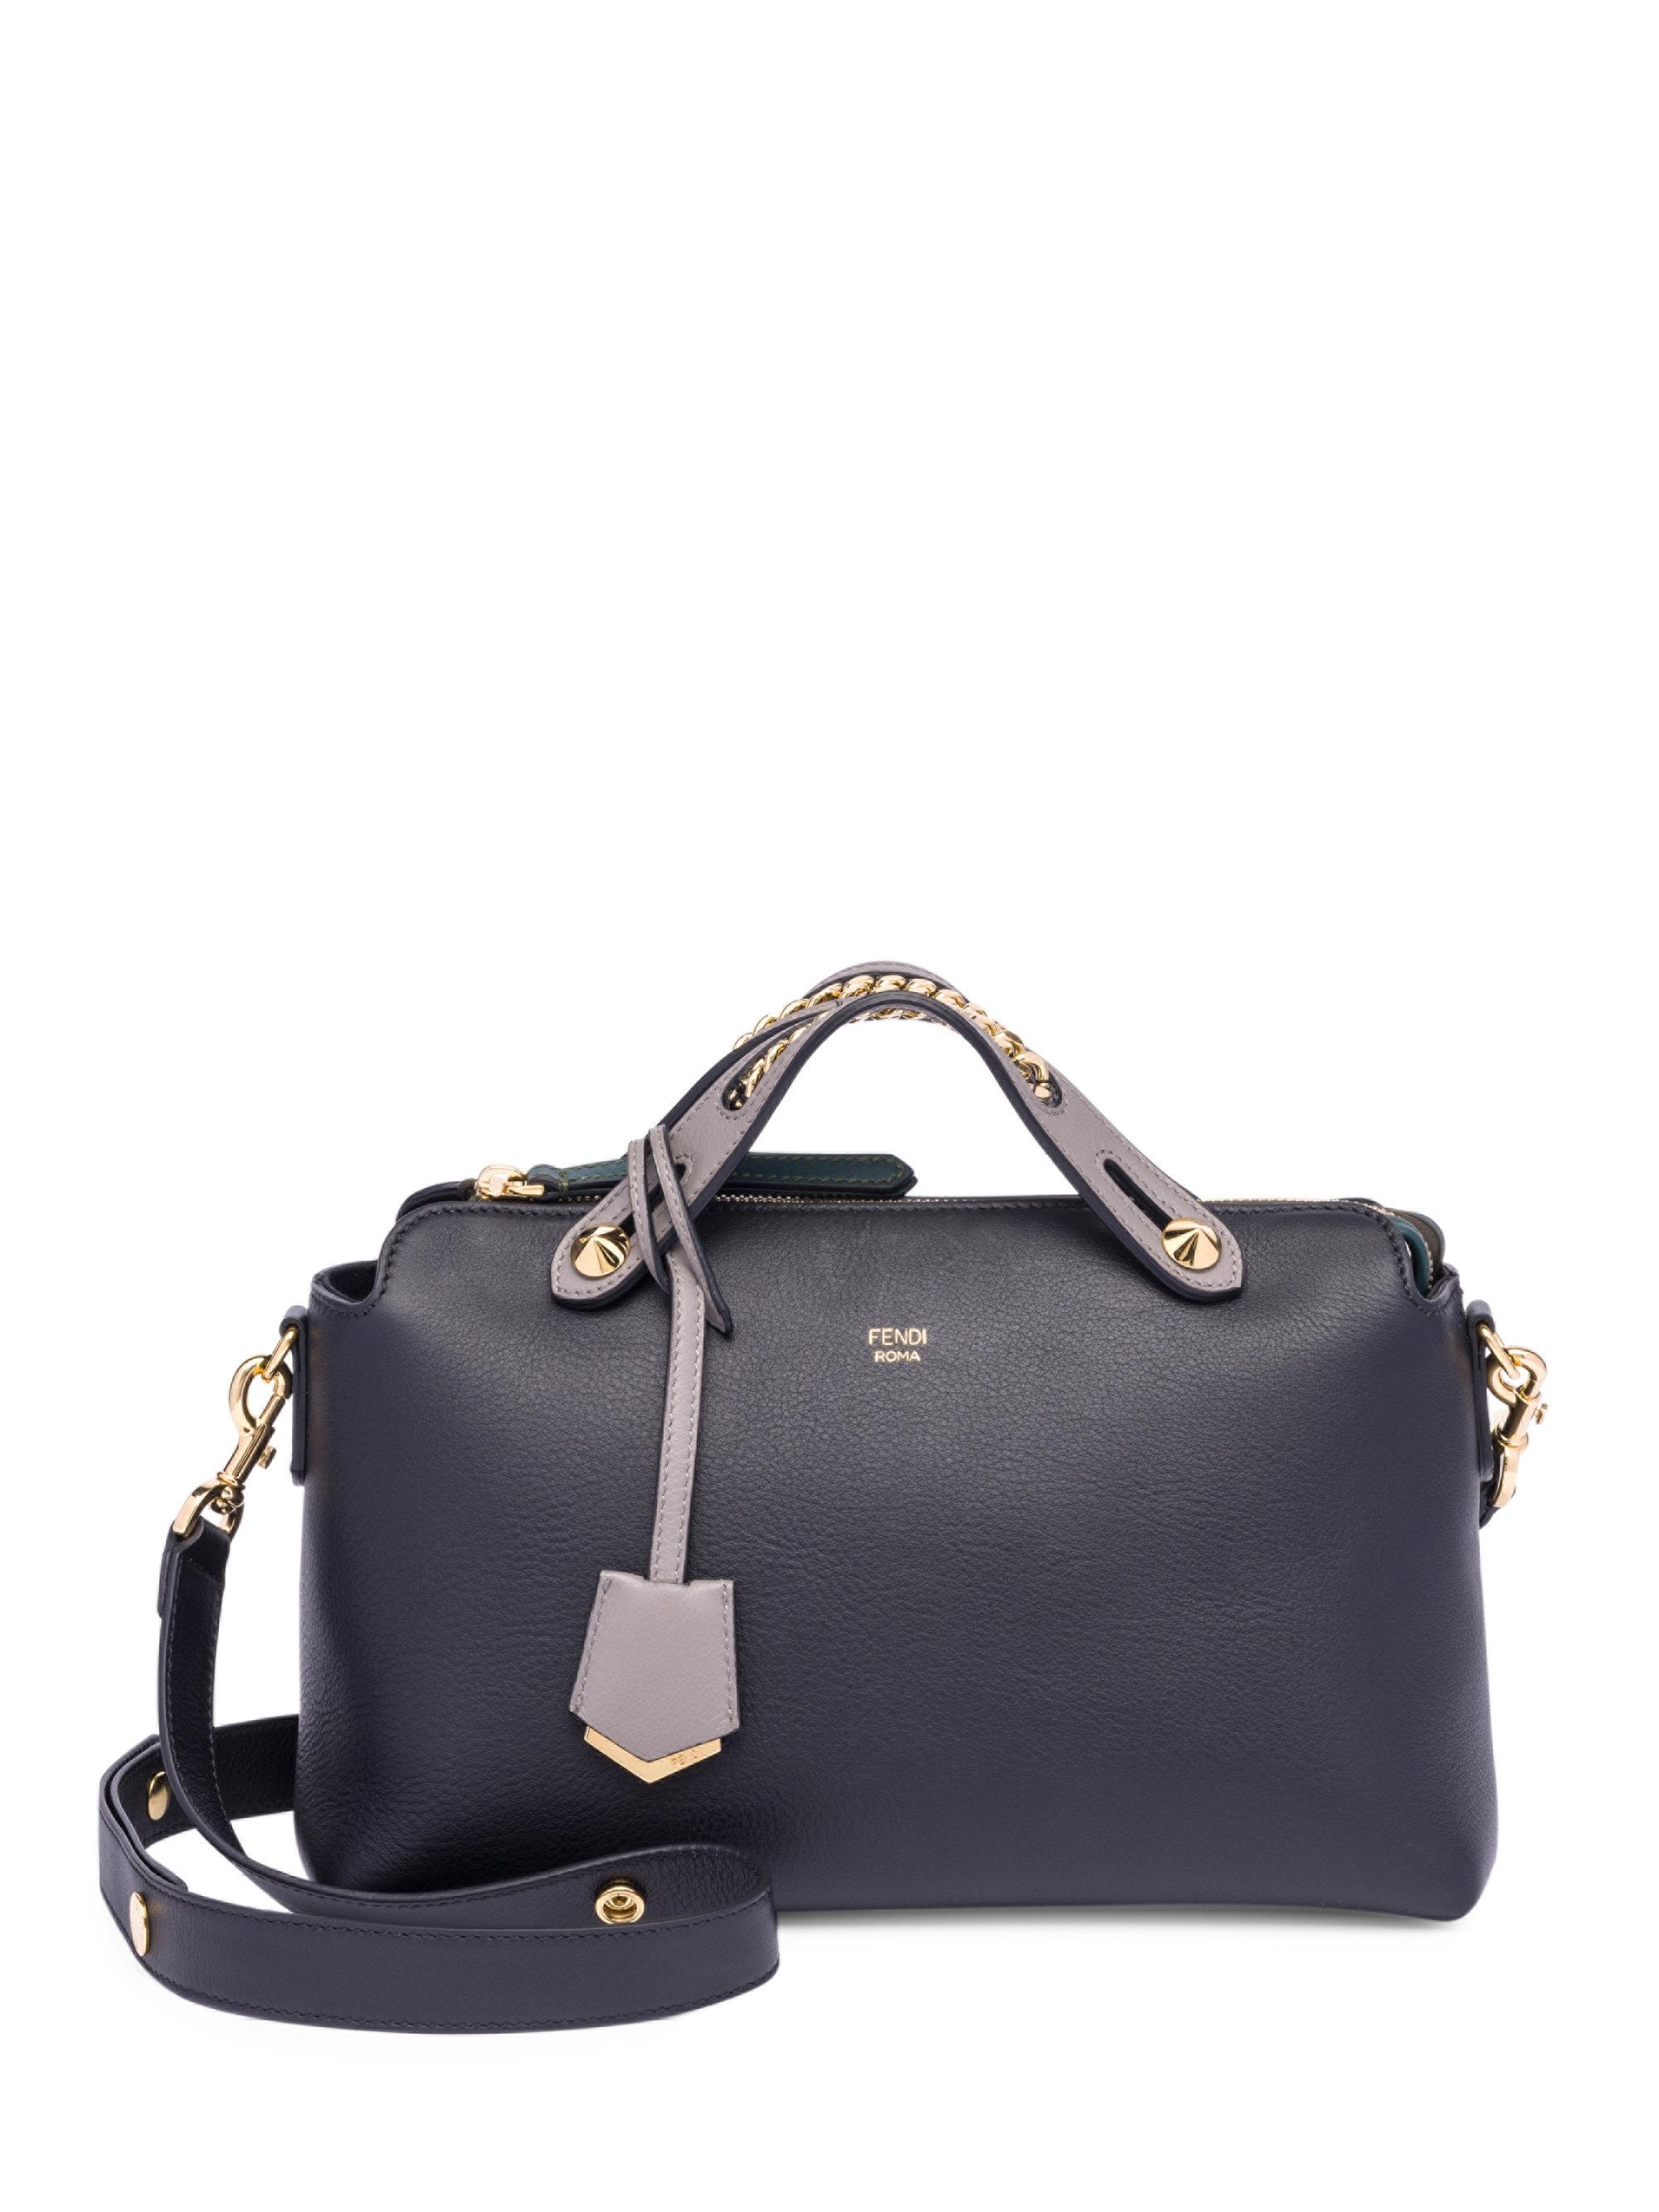 2d99093878d2 ... ireland lyst fendi by the way chain inset leather boston bag in black  14246 cb9d0 ...